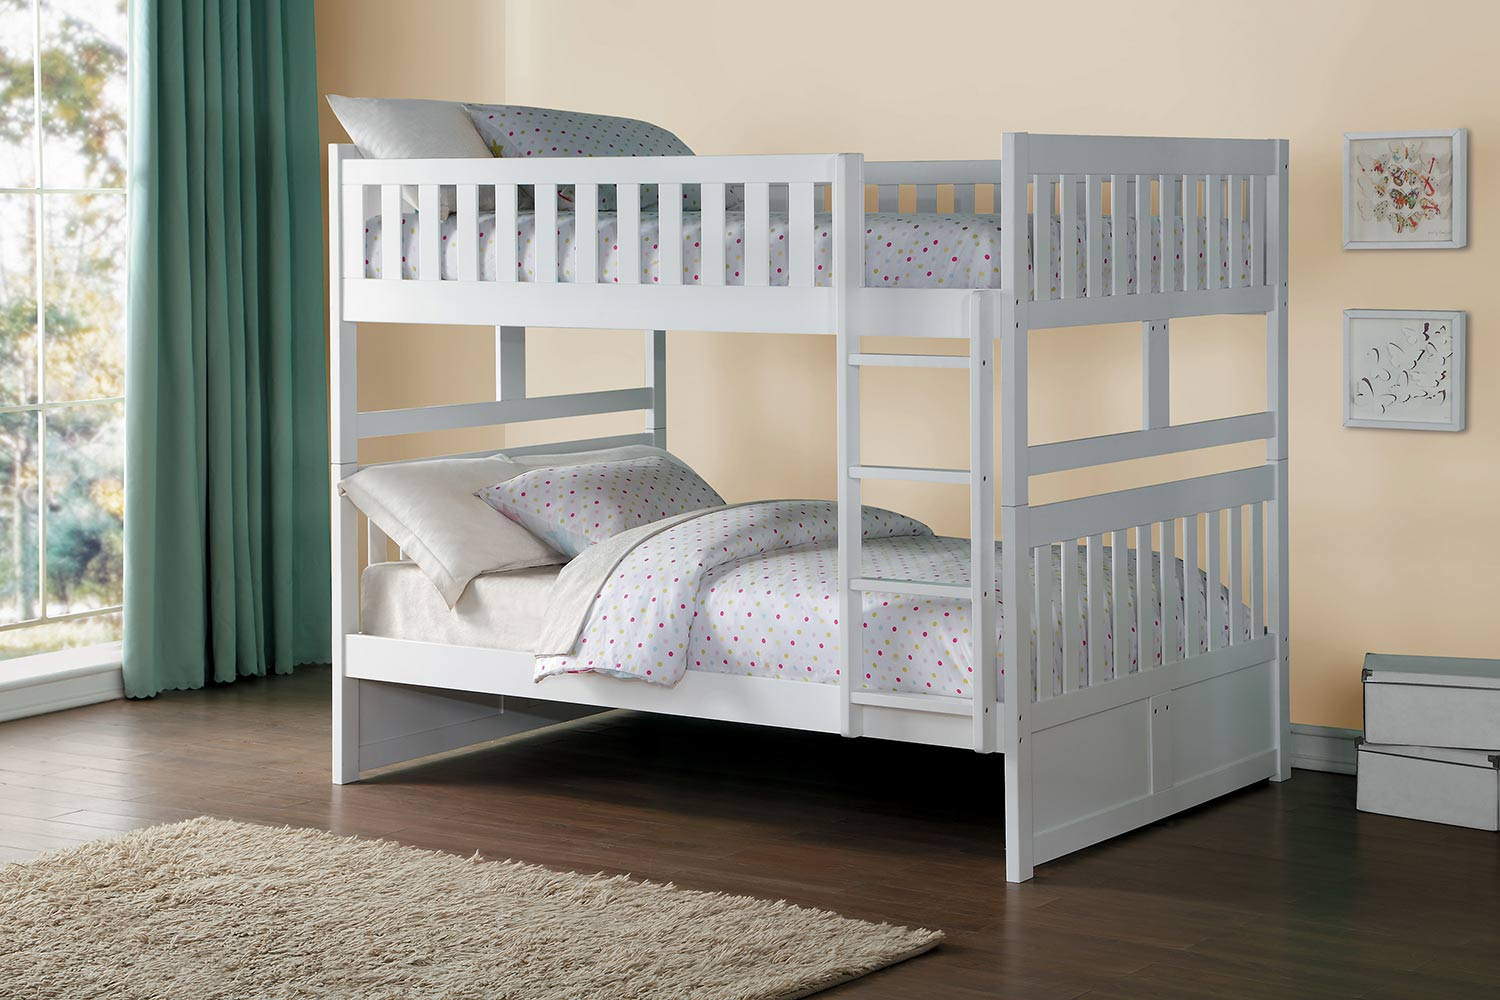 Homelegance Galen Full over Full Bunk Bed - White